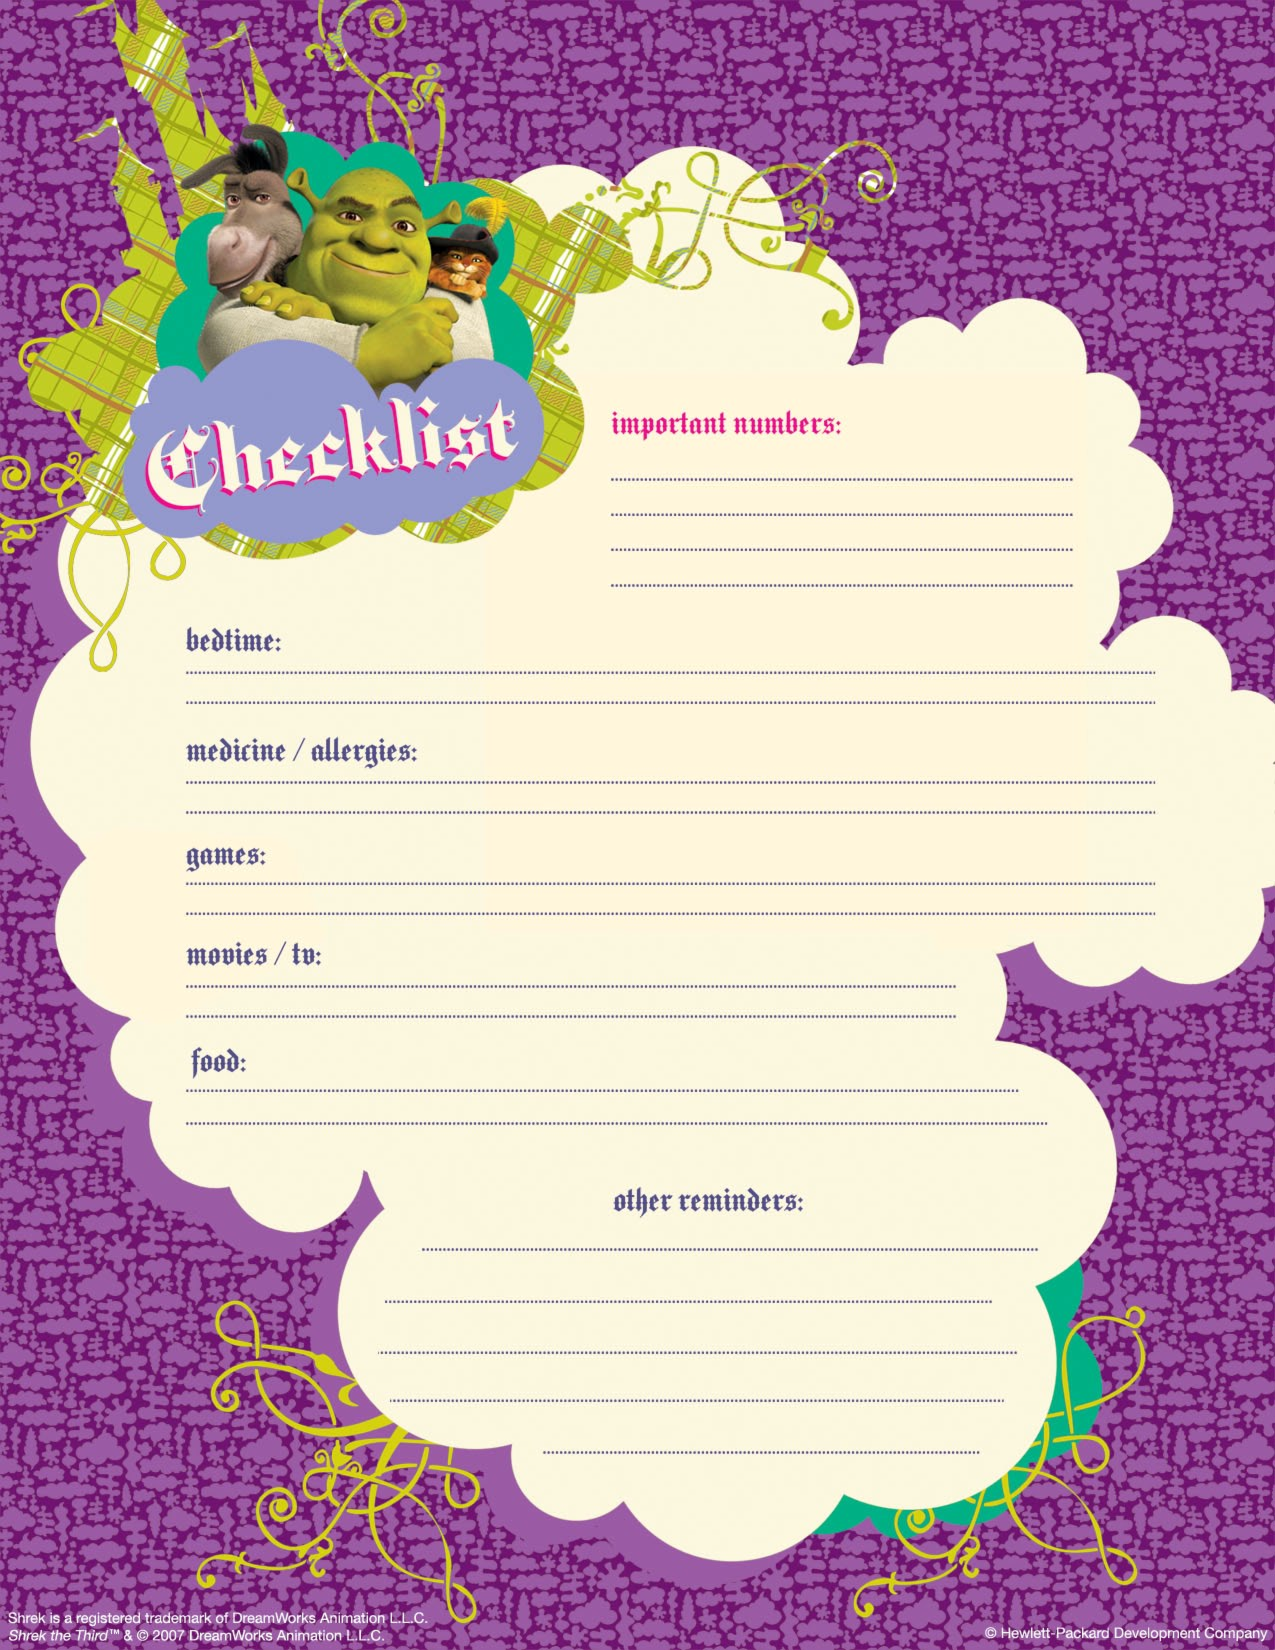 best images of printable babysitter flyers babysitting printable babysitting templates